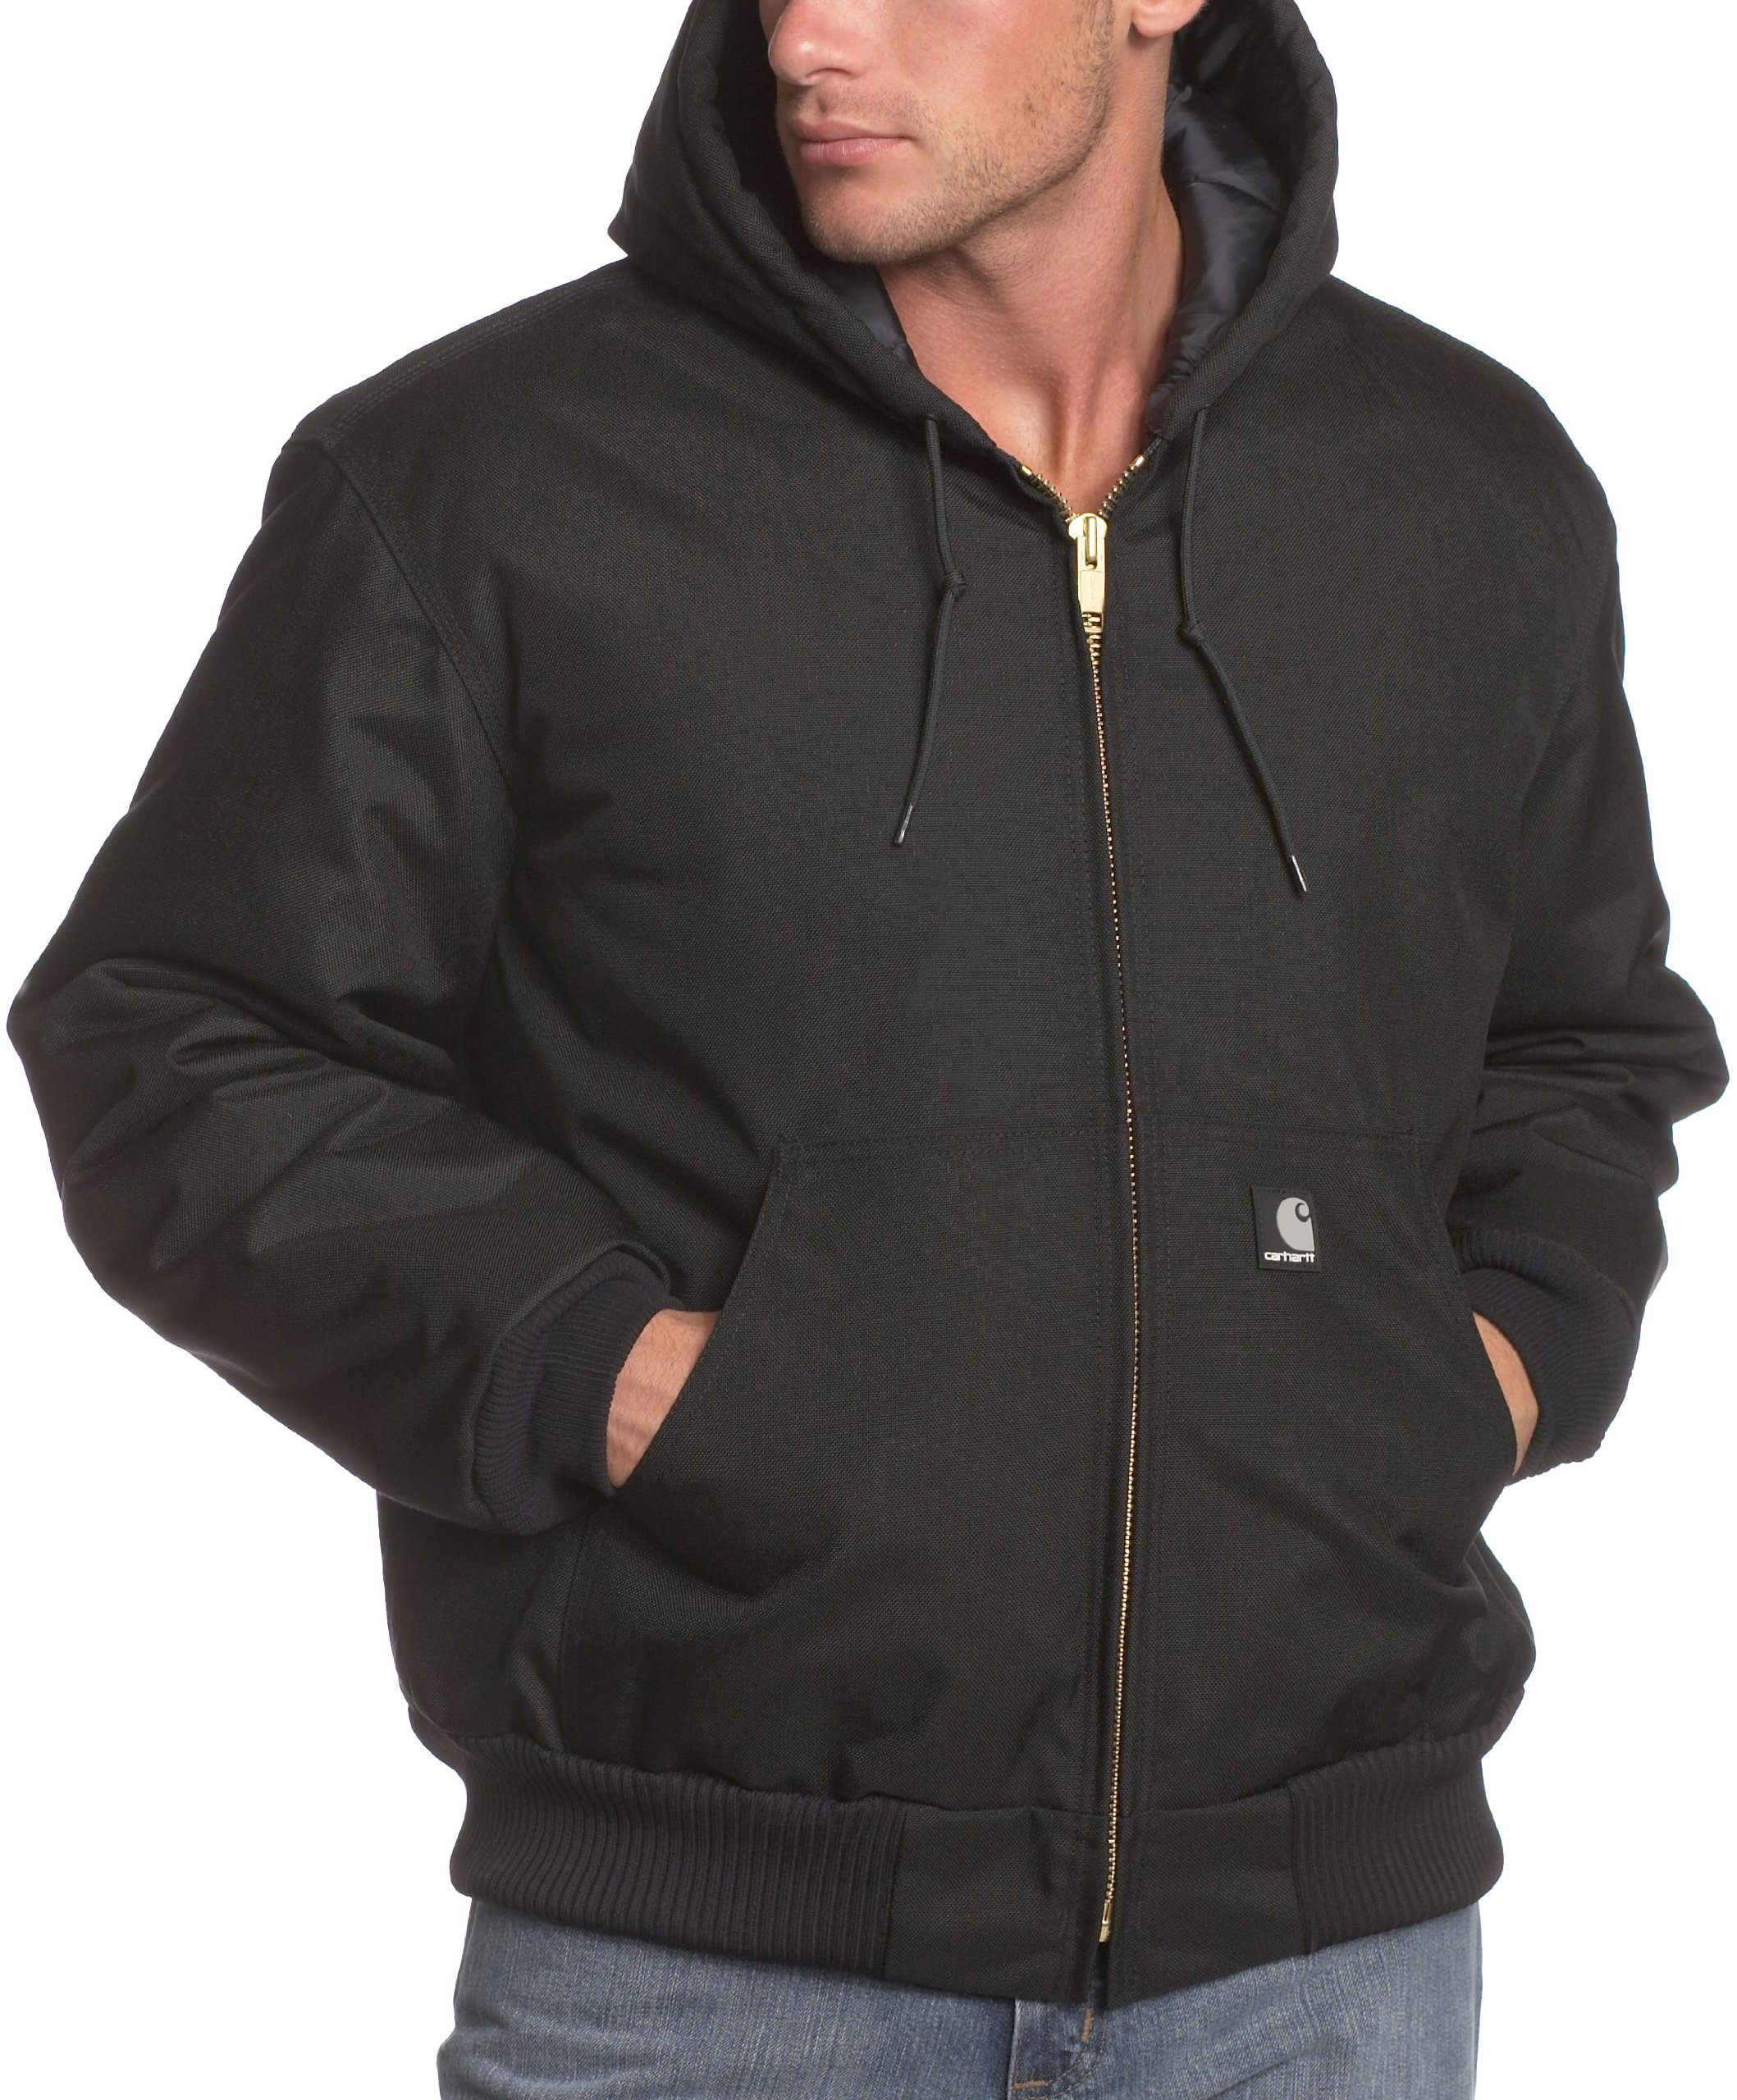 Carhartt Men's Big & Tall Arctic Quilt Lined Yukon Active Jacket,Black,XXX-Large Tall